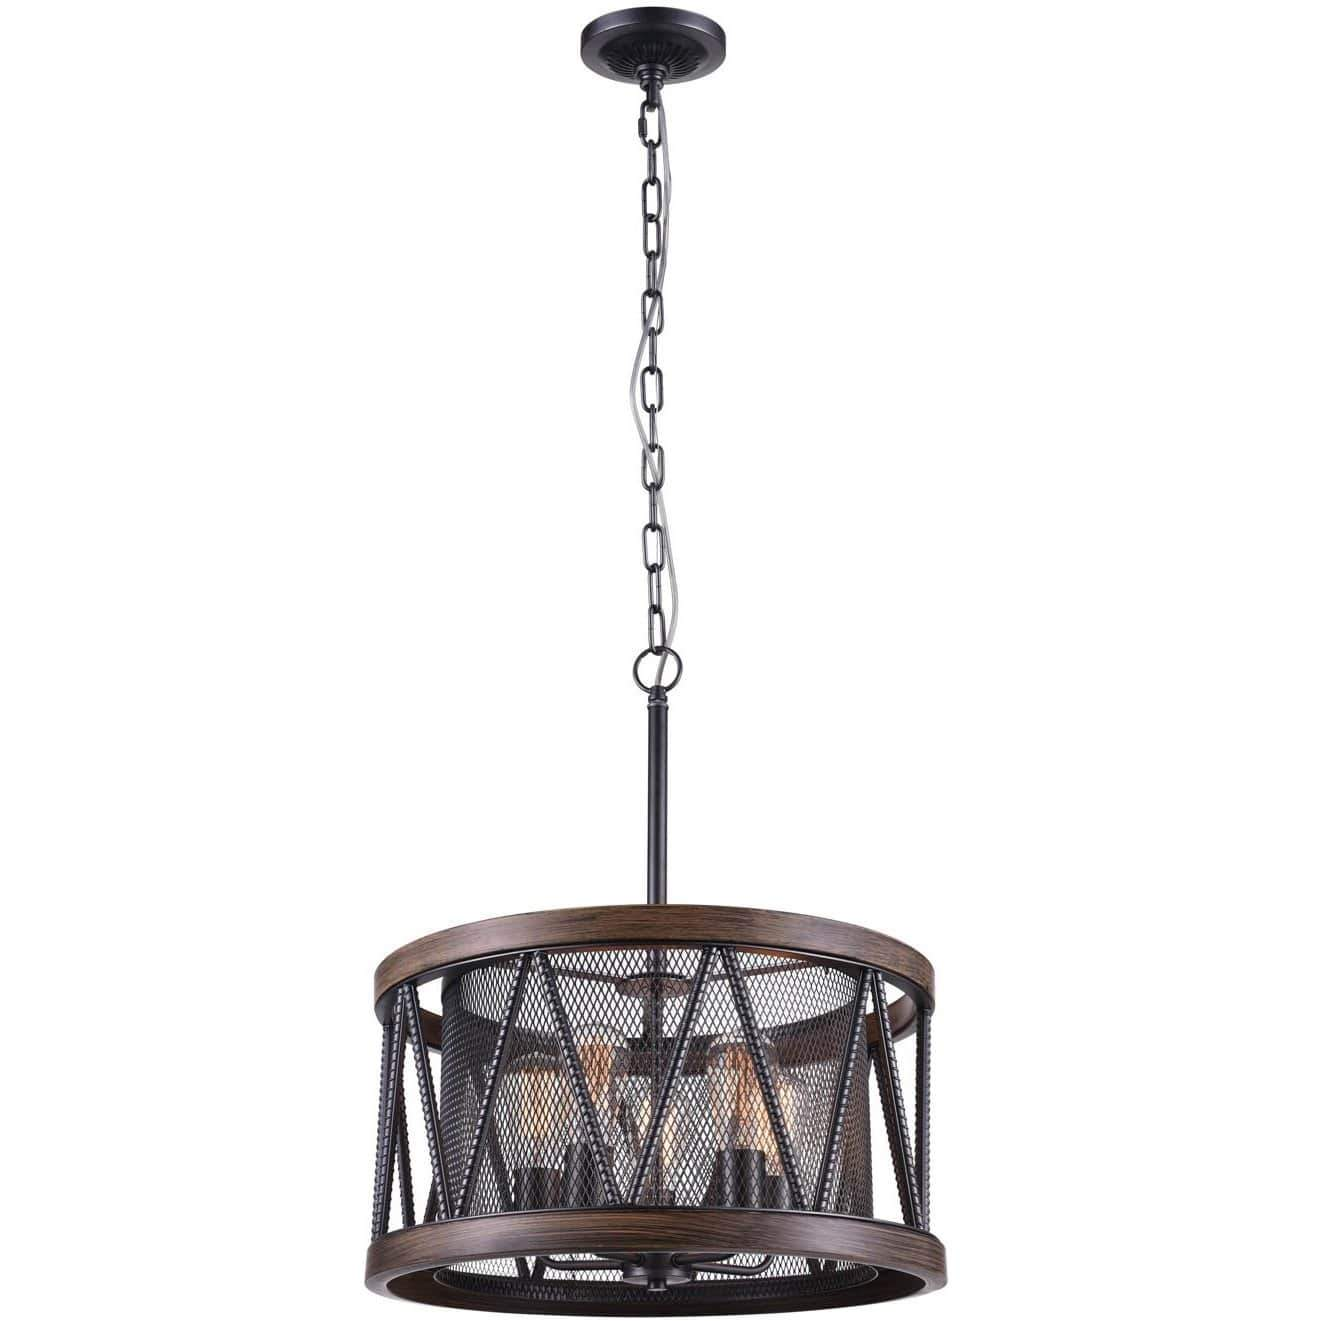 CWI Lighting Chandeliers Pewter Parsh 5 Light Drum Shade Chandelier with Pewter finish by CWI Lighting 9954P20-5-101